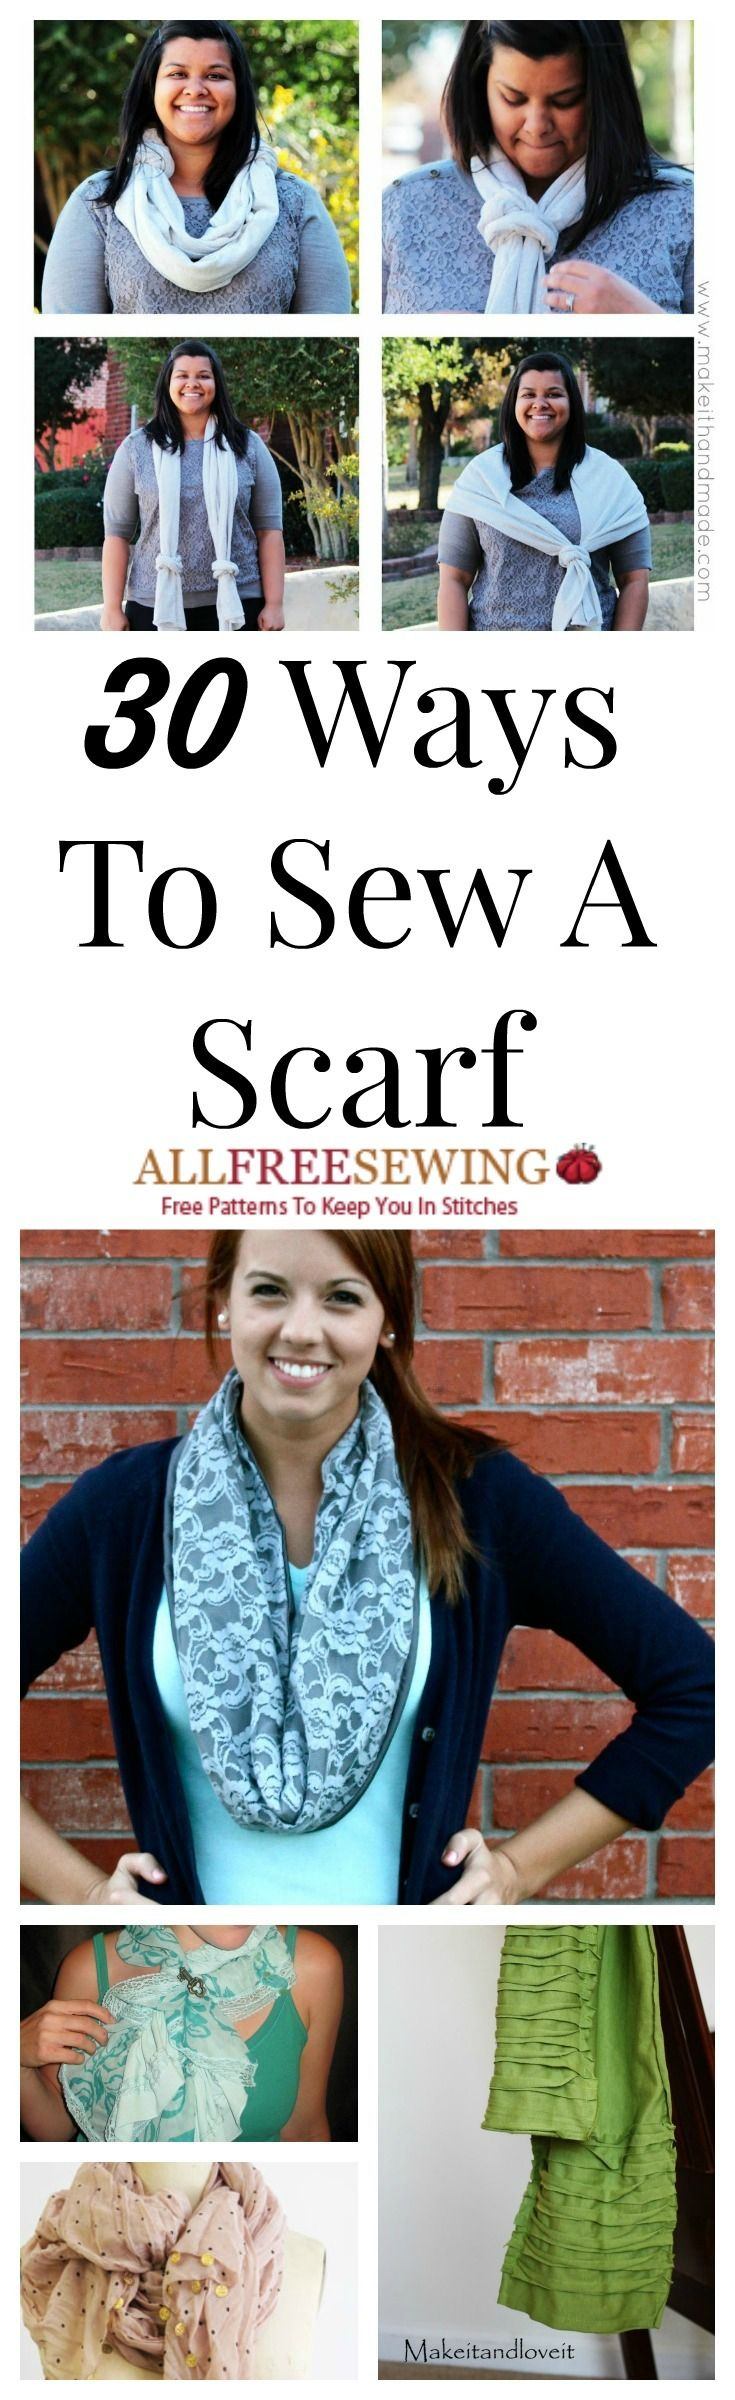 30 Ways to Learn How to Sew a Scarf + Infinity Scarf Patterns